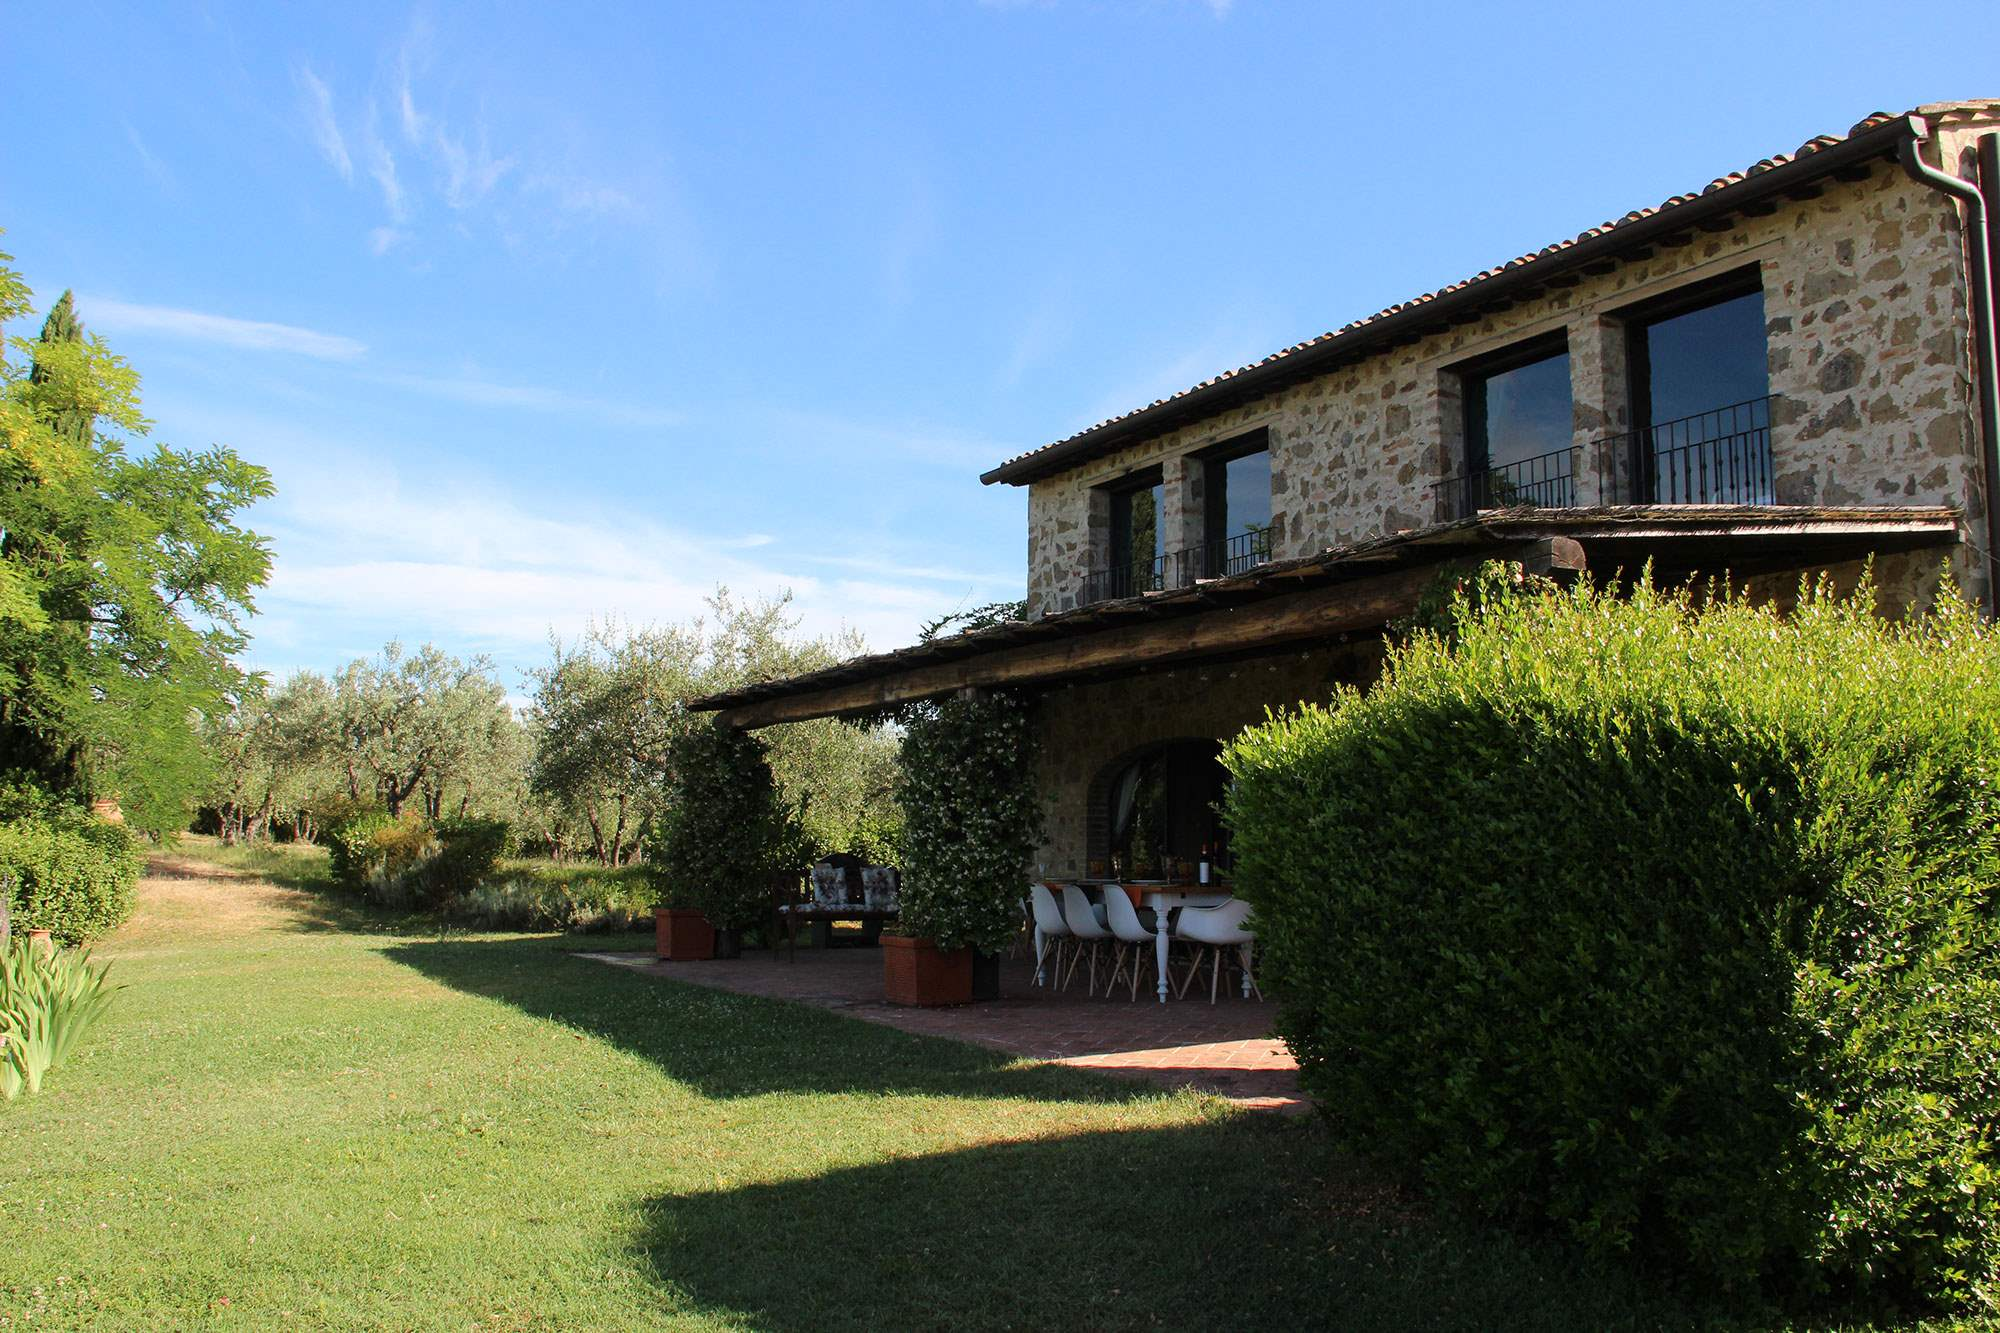 Villa Capanna, 3 bedroom villa in Chianti & Countryside, Tuscany Photo #15